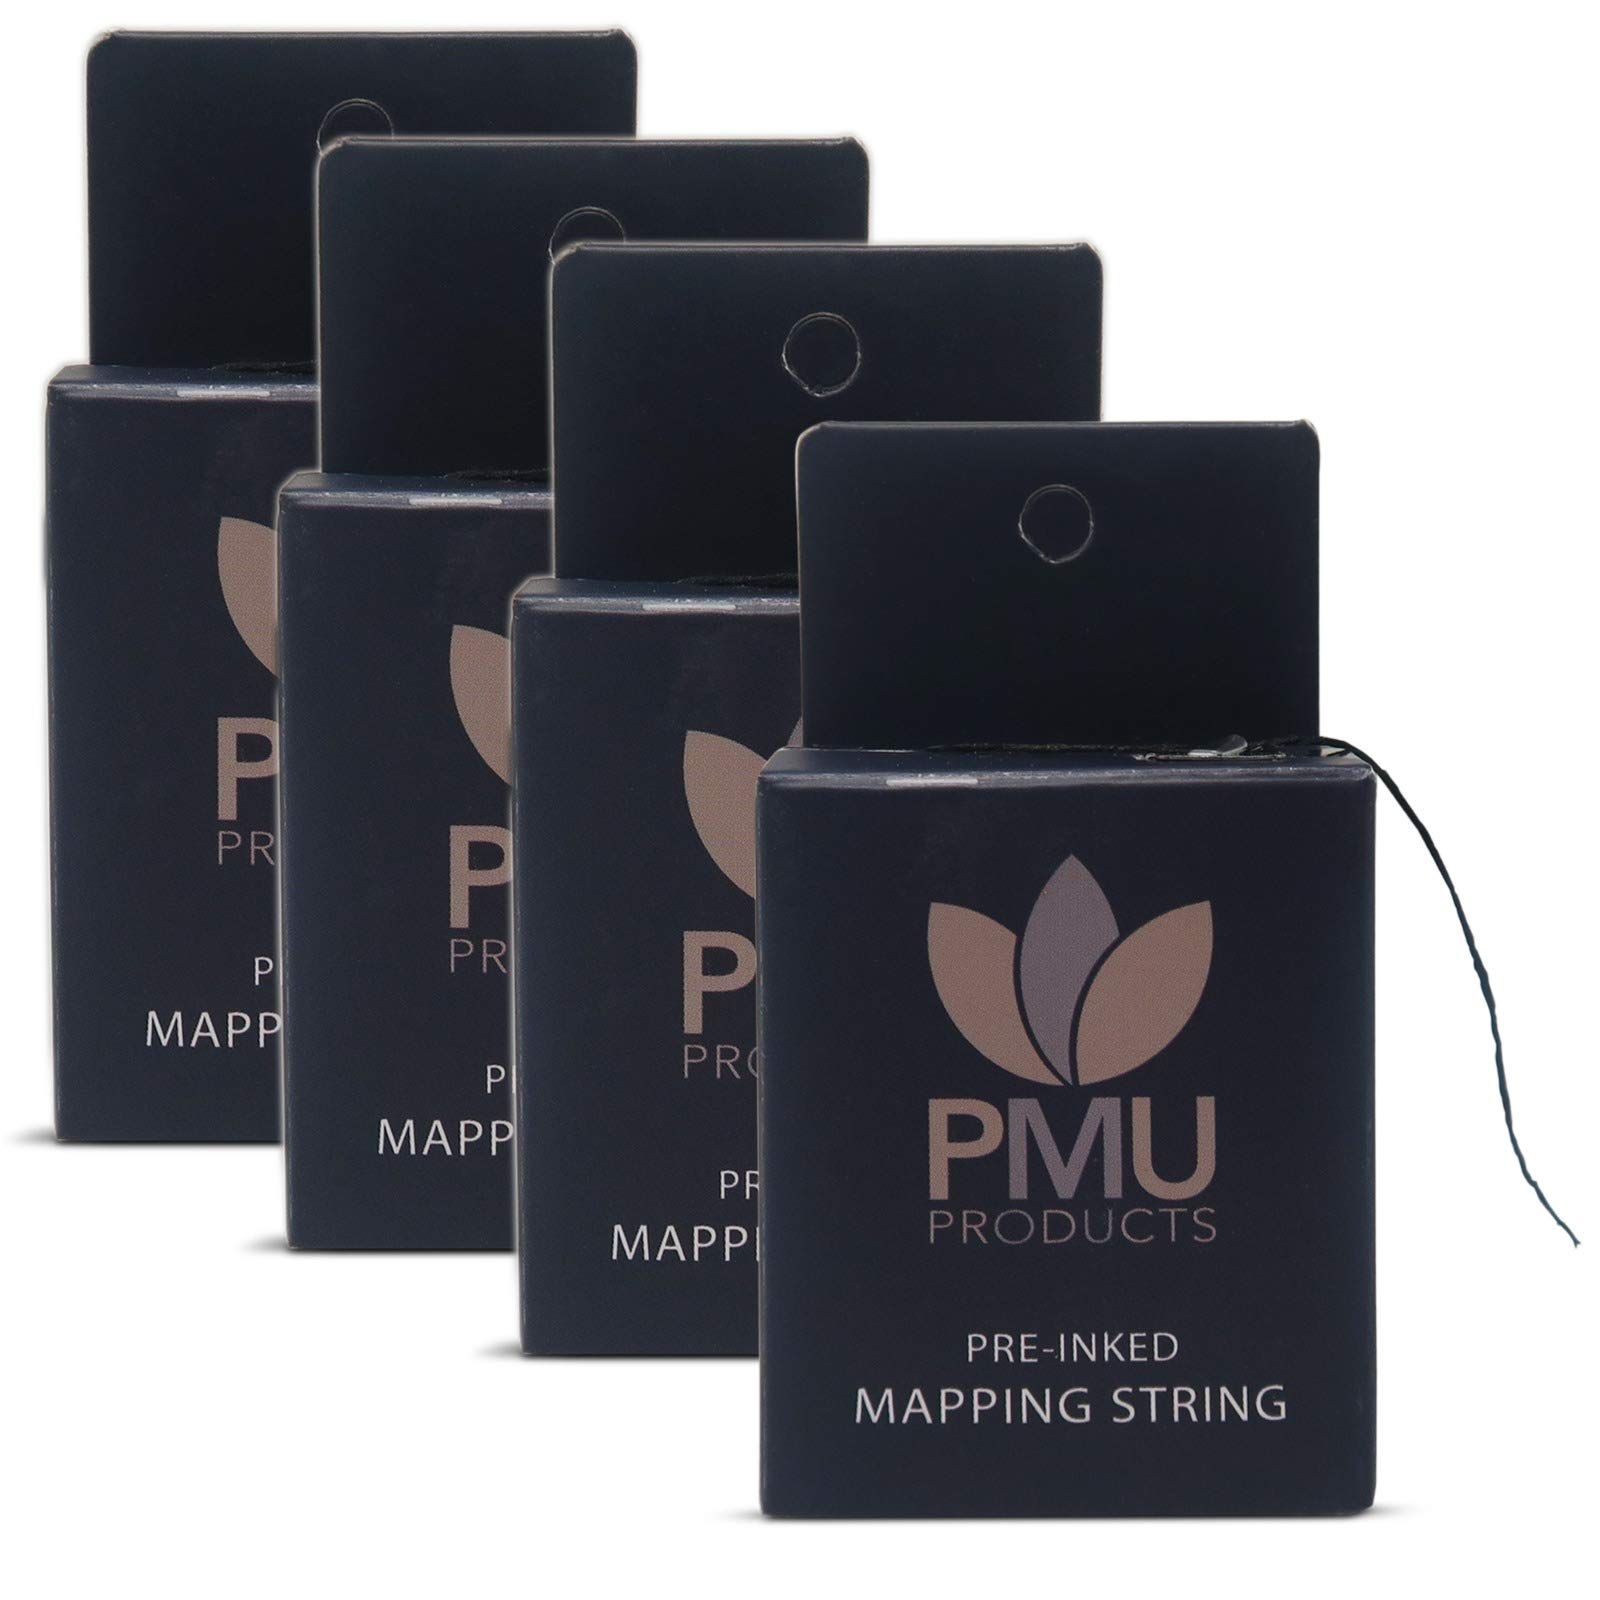 PMU THE ORIGINAL Pre-Inked Microblading String for Brow Mapping - Measuring Tool for Marking Symmetrical Eyebrows (Pack of 4)